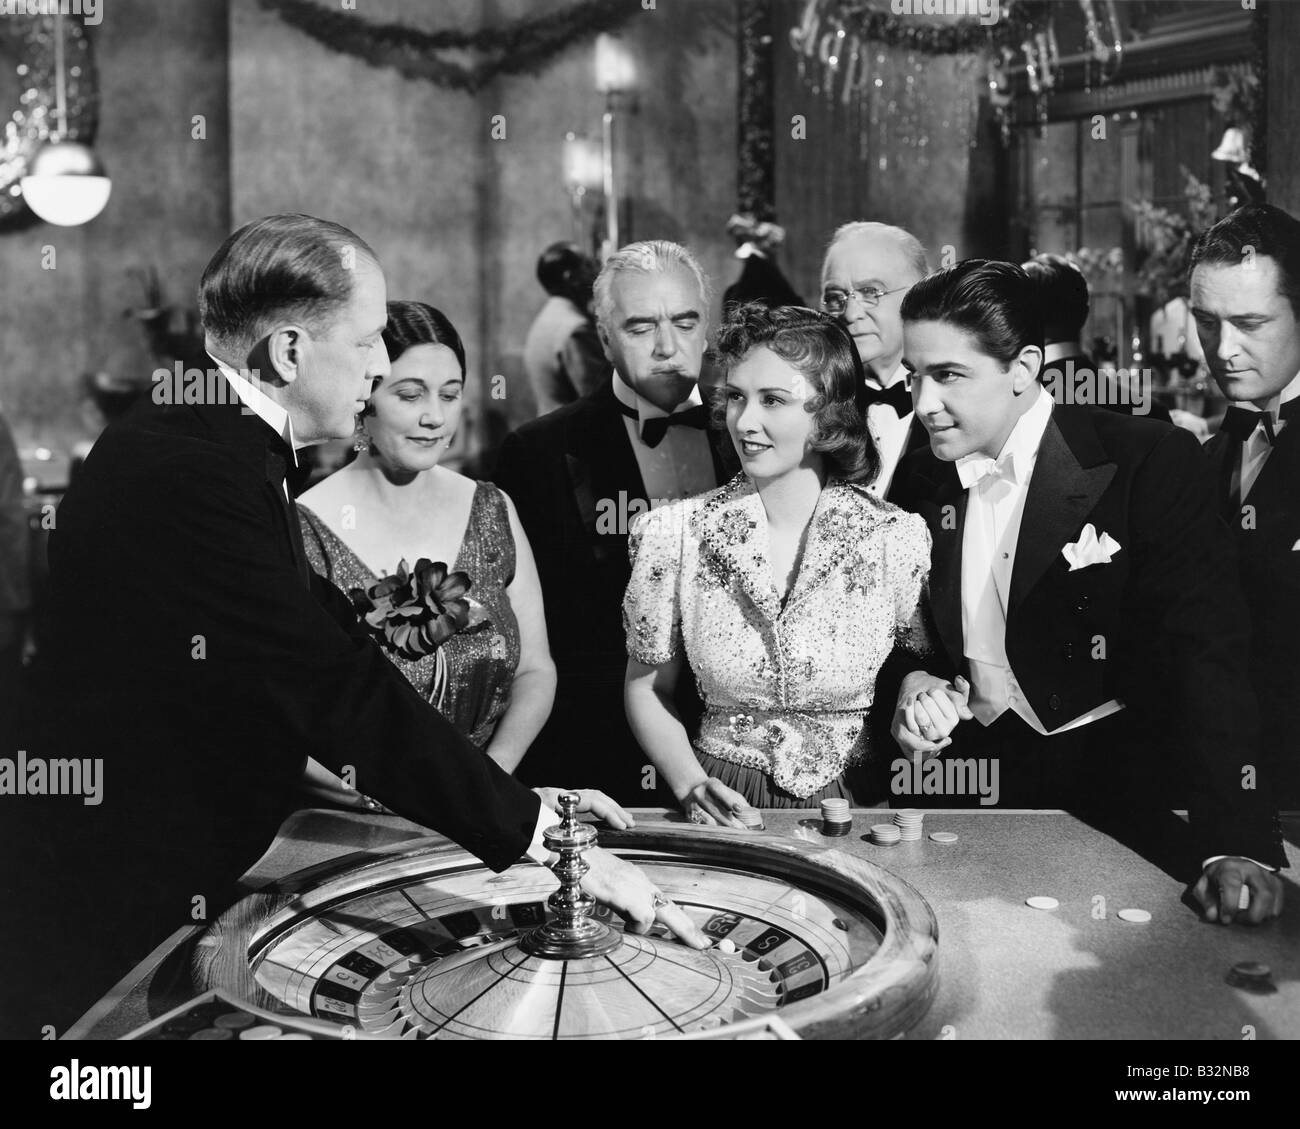 People at roulette table - Stock Image